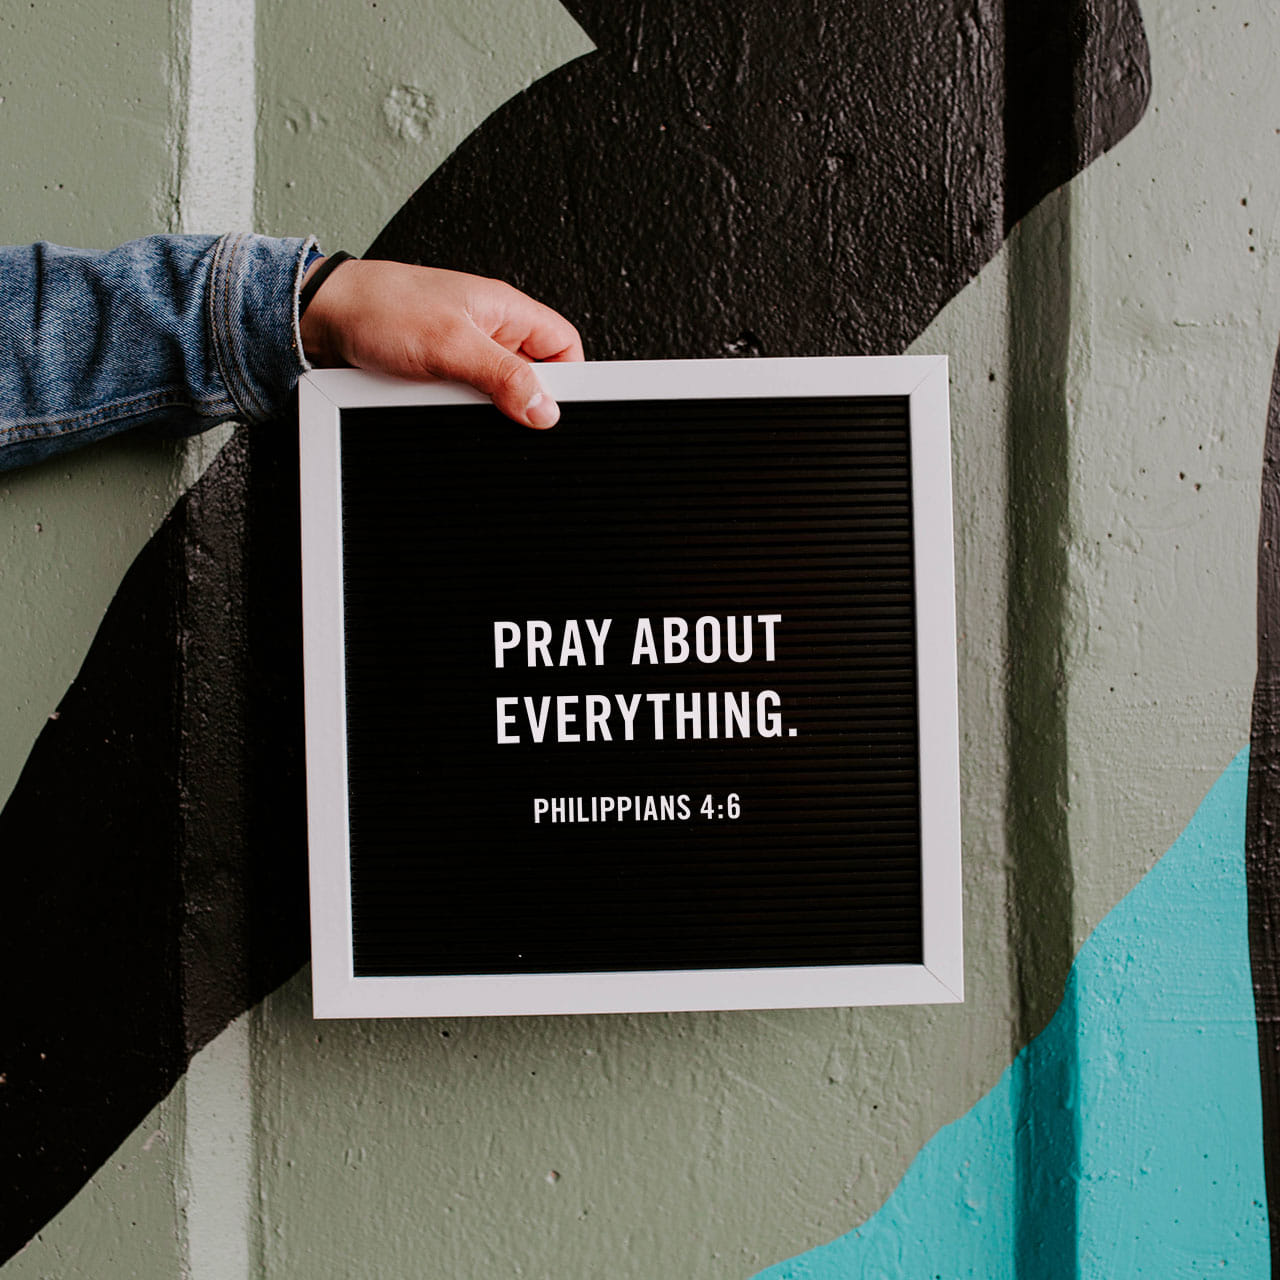 Pray about everything - Philippians 4:6